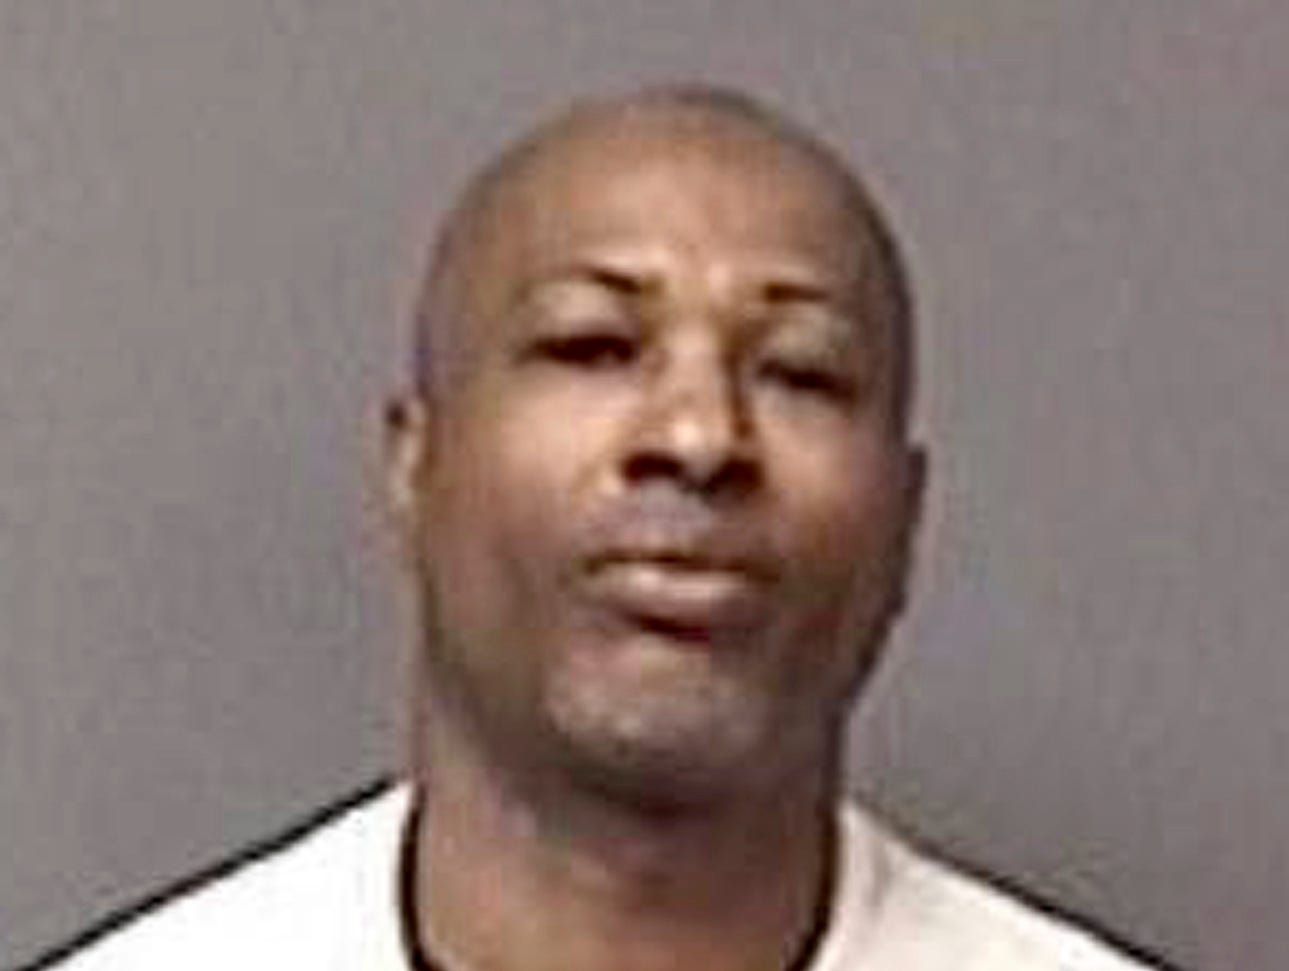 This undated booking photo provided by the Aurora Illinois Police Department shows Gary Montez Martin, who police say killed multiple people at a suburban Chicago manufacturing warehouse after he was fired, Friday, Feb. 15, 2019.